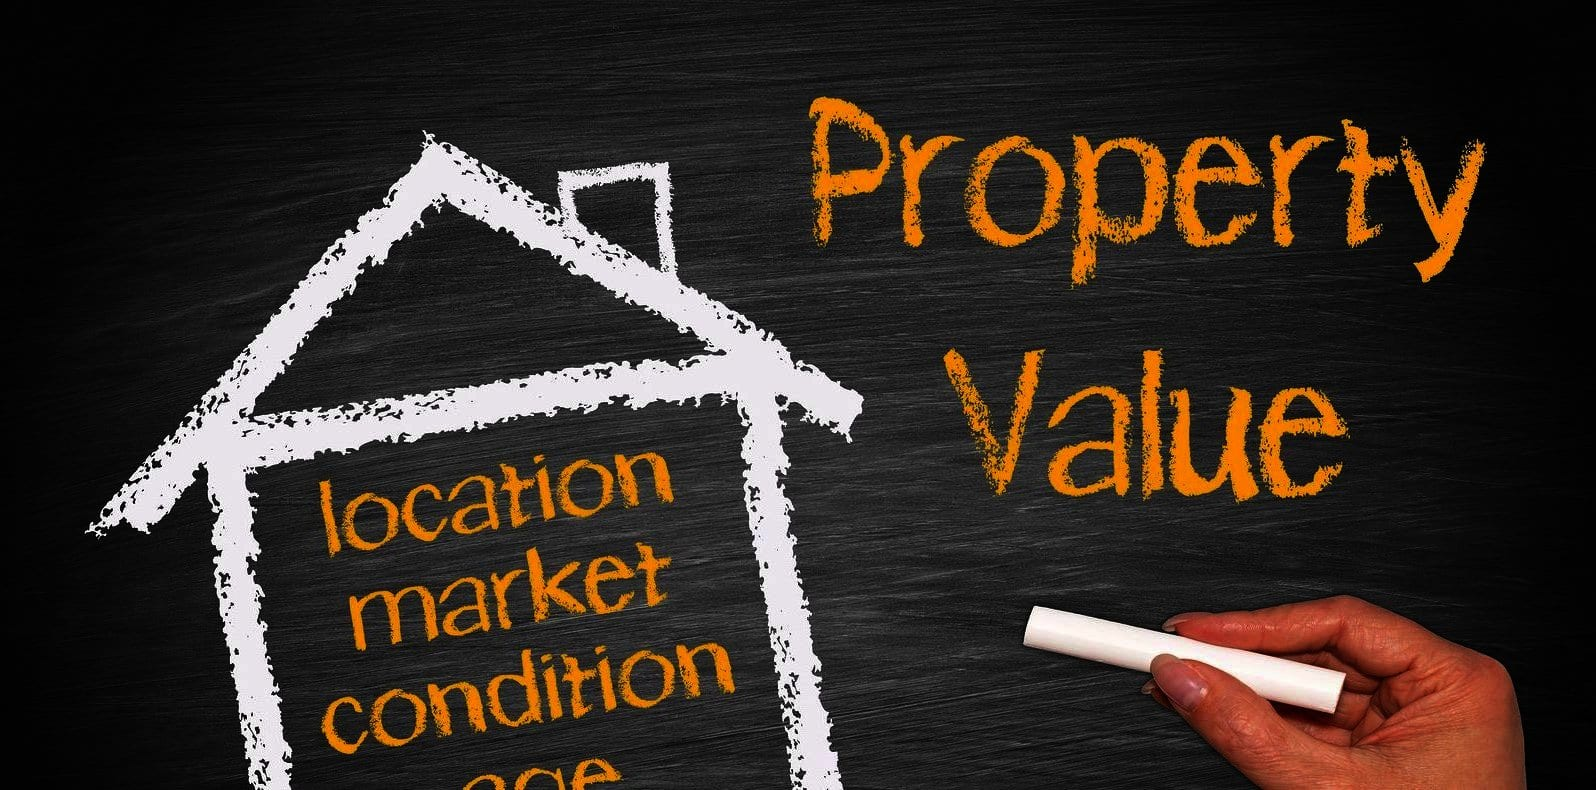 property valuers in Kisumu,land valuers in Kisumu,property valuation in Kisumu,property appraisal in Kisumu,housing appraisal in Kisumu,real estate valuation Kisumu,real estate valuer in Kisumu,estate valuer in Kisumu,property valuer in Kisumu,building valuer in Kisumu,commercial valuer in Kisumu,real estate valuer in Kisumu,home valuer in Kisumu,property valuers Kisumu,land valuers Kisumu,property valuation Kisumu,property appraisal Kisumu,housing appraisal Kisumu,real estate valuation Kisumu